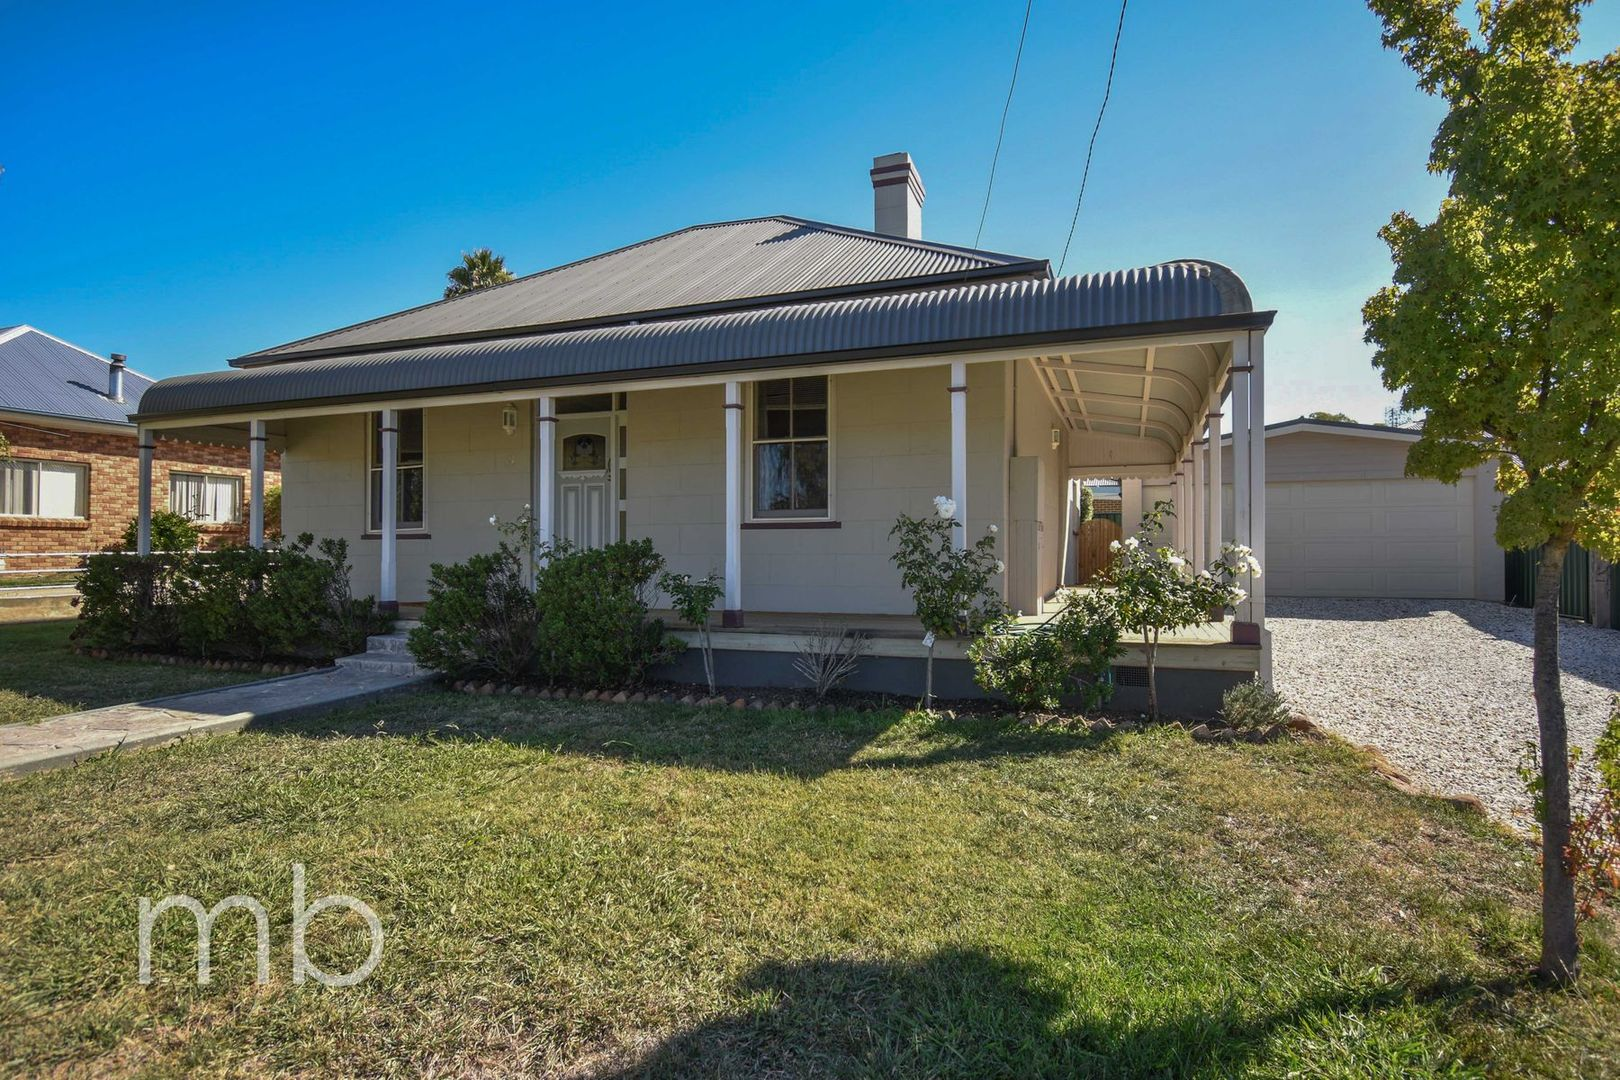 27 McLachlan Street, Orange NSW 2800, Image 0